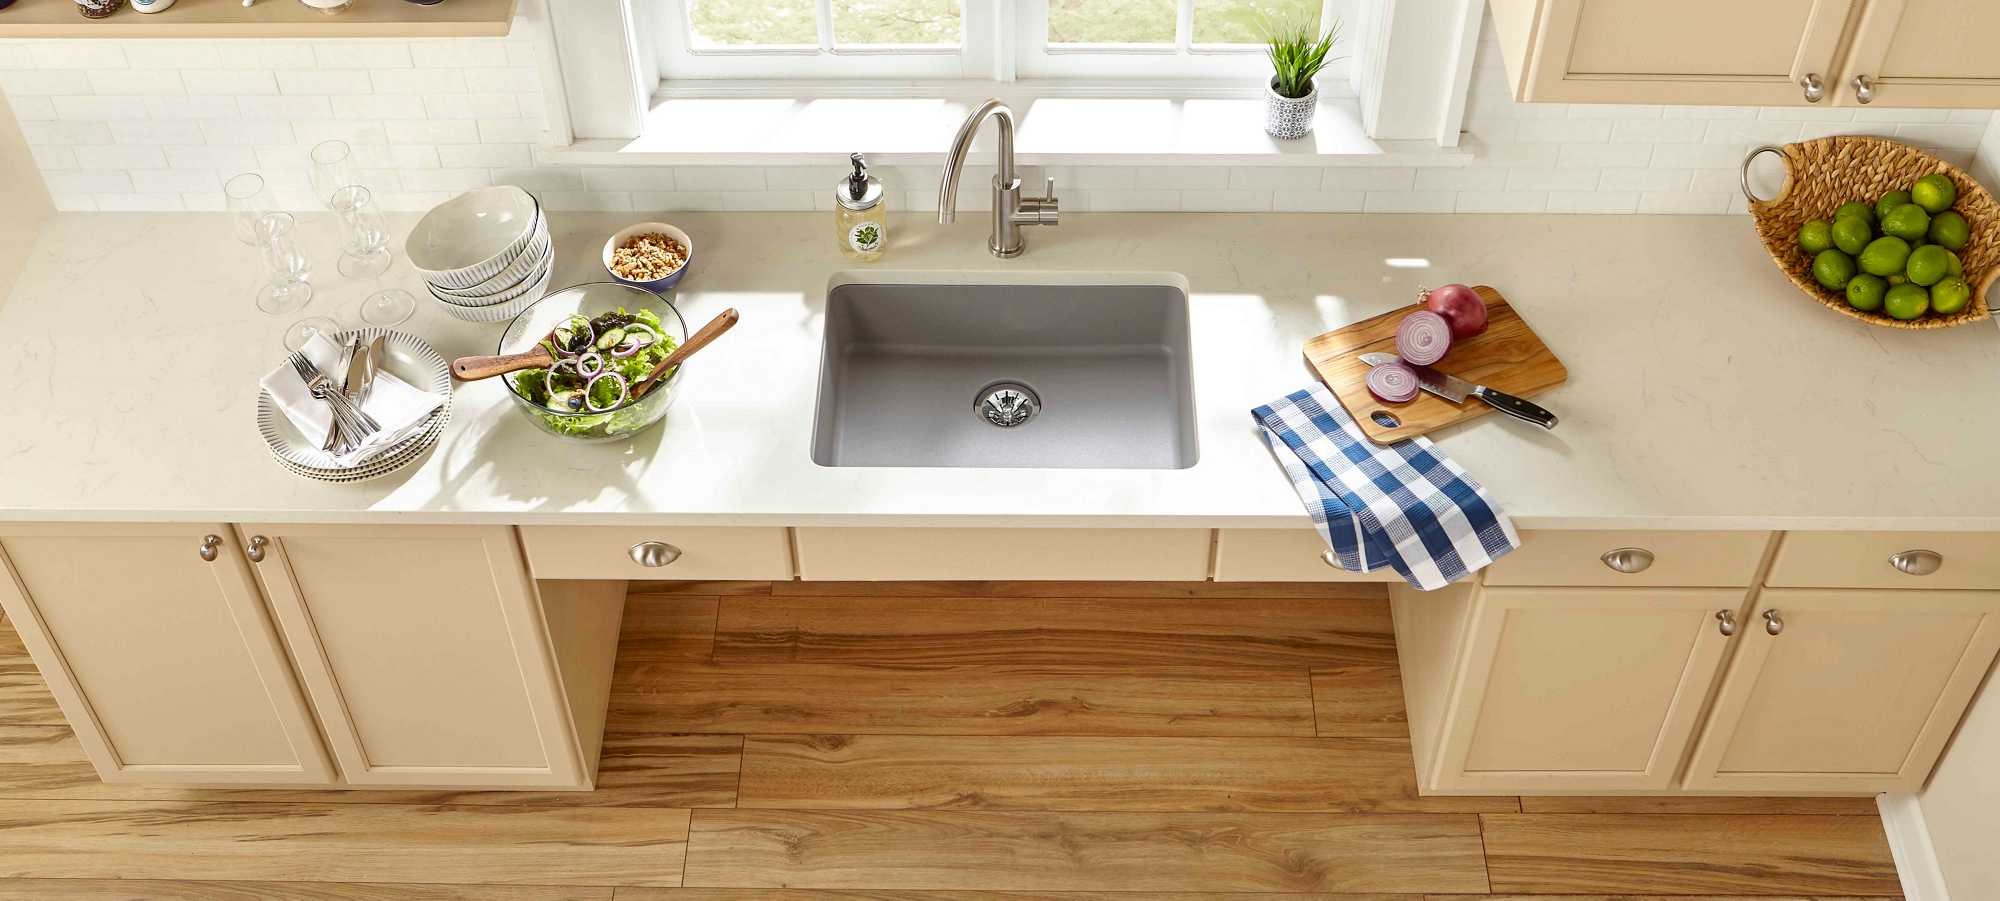 Handicap Accessible Kitchen Sink